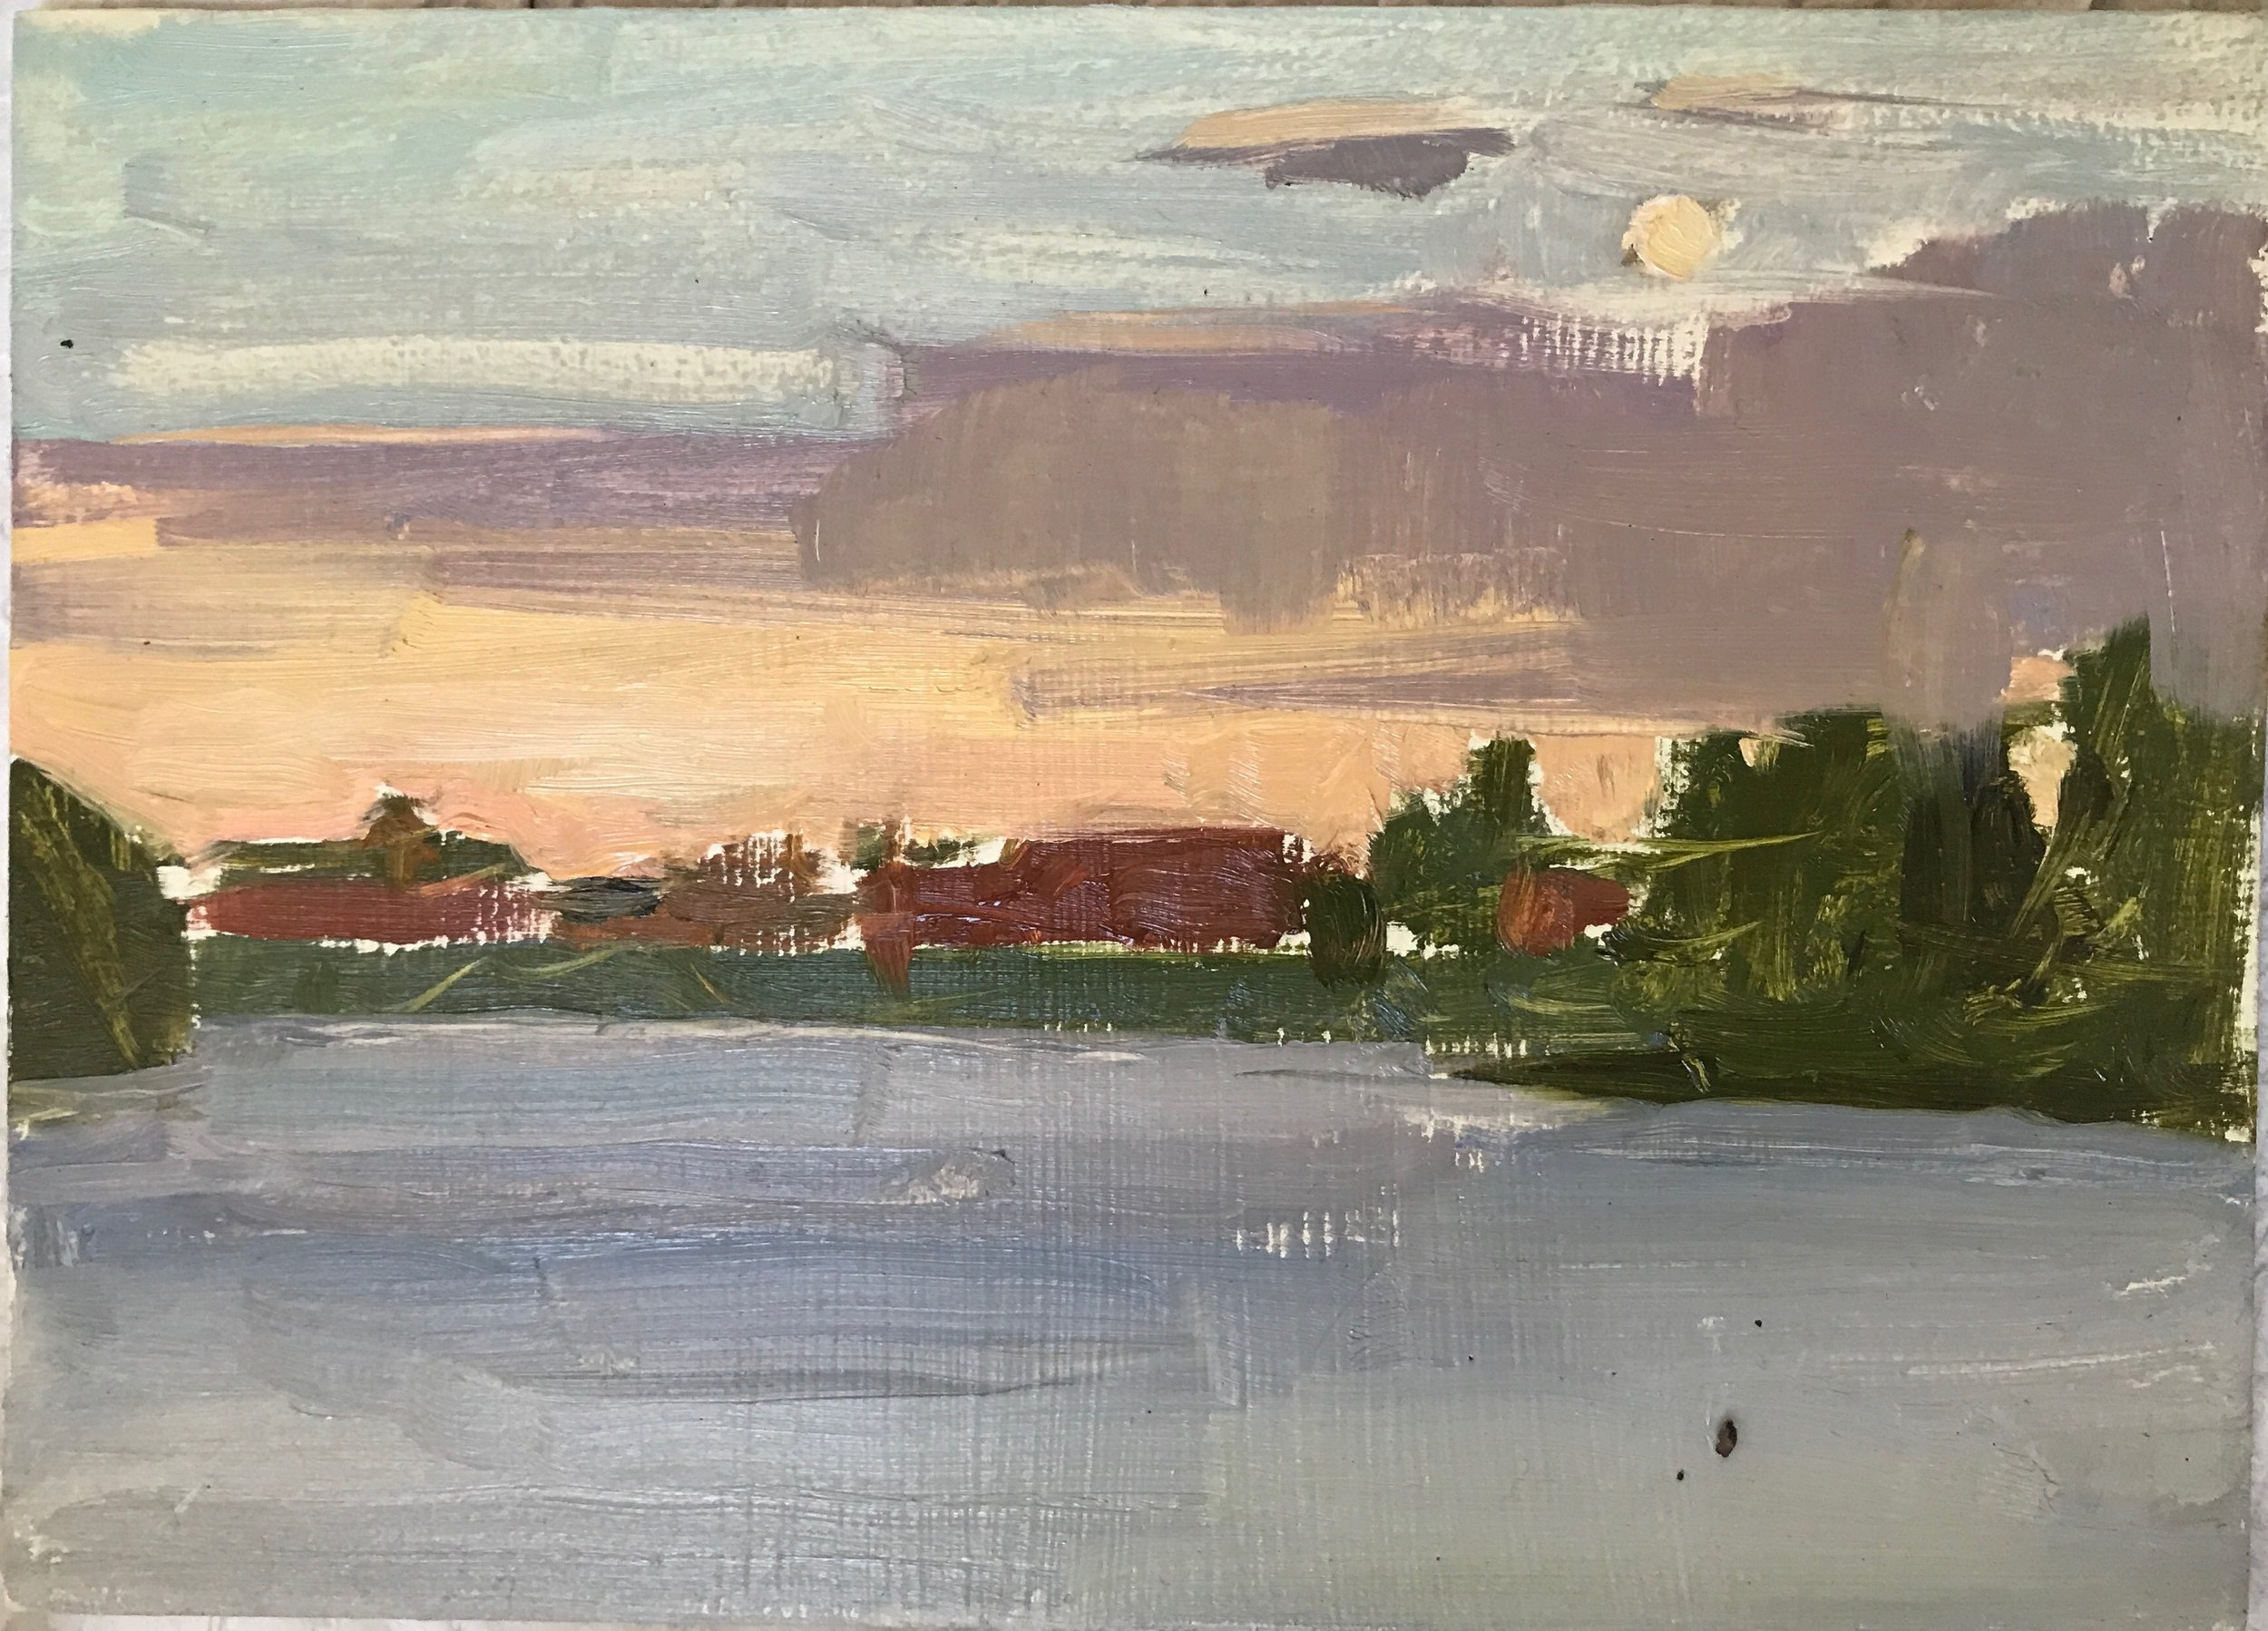 View from the Boat with dirt speck. Painted after closing between :2:30 and 4 am.